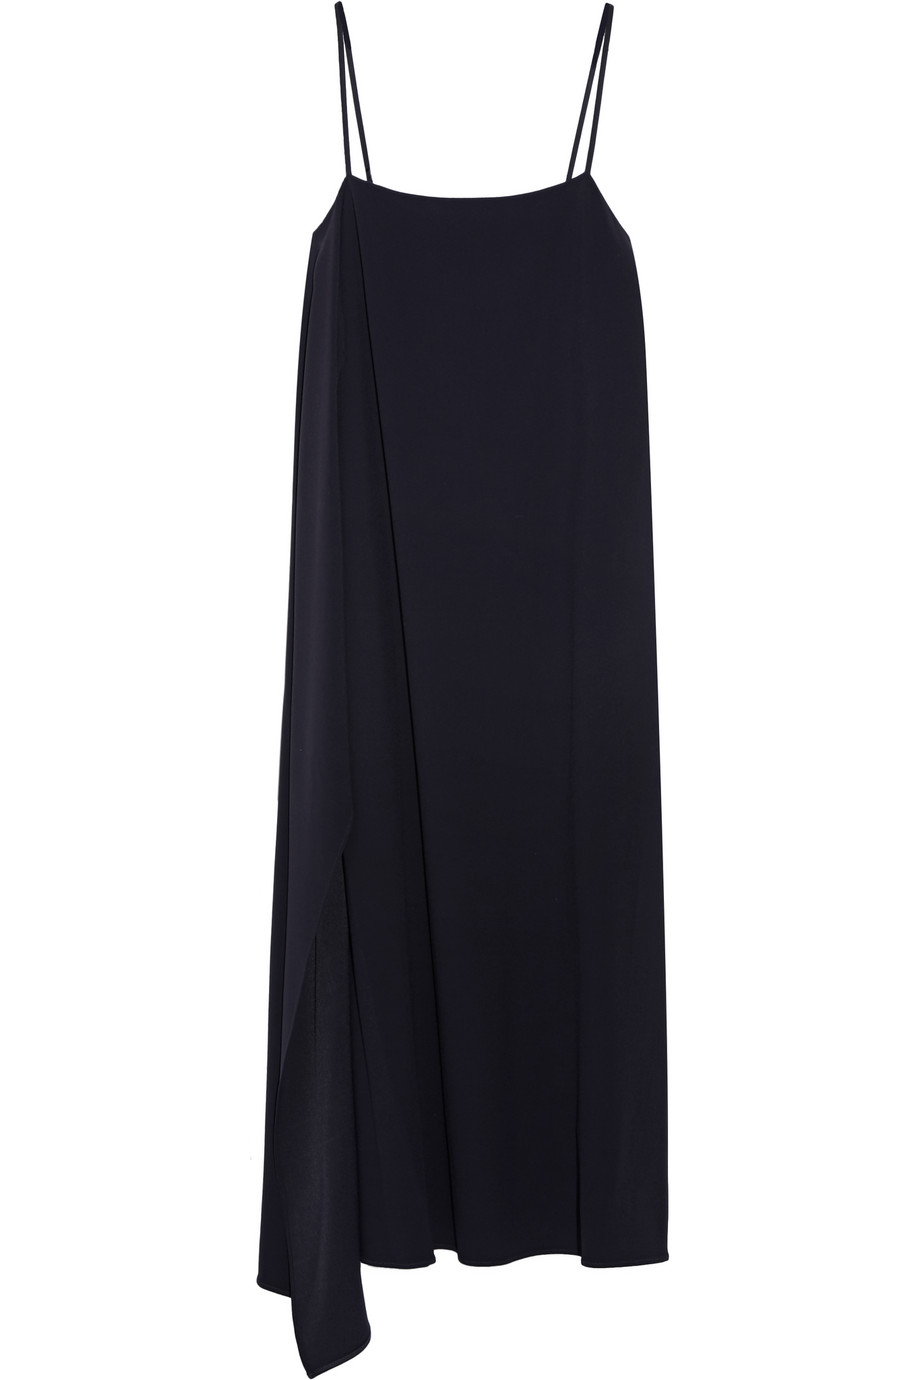 Helmut Lang Asymmetric Crepe Midi Slip Dress, Midnight Blue, Women's, Size: XS